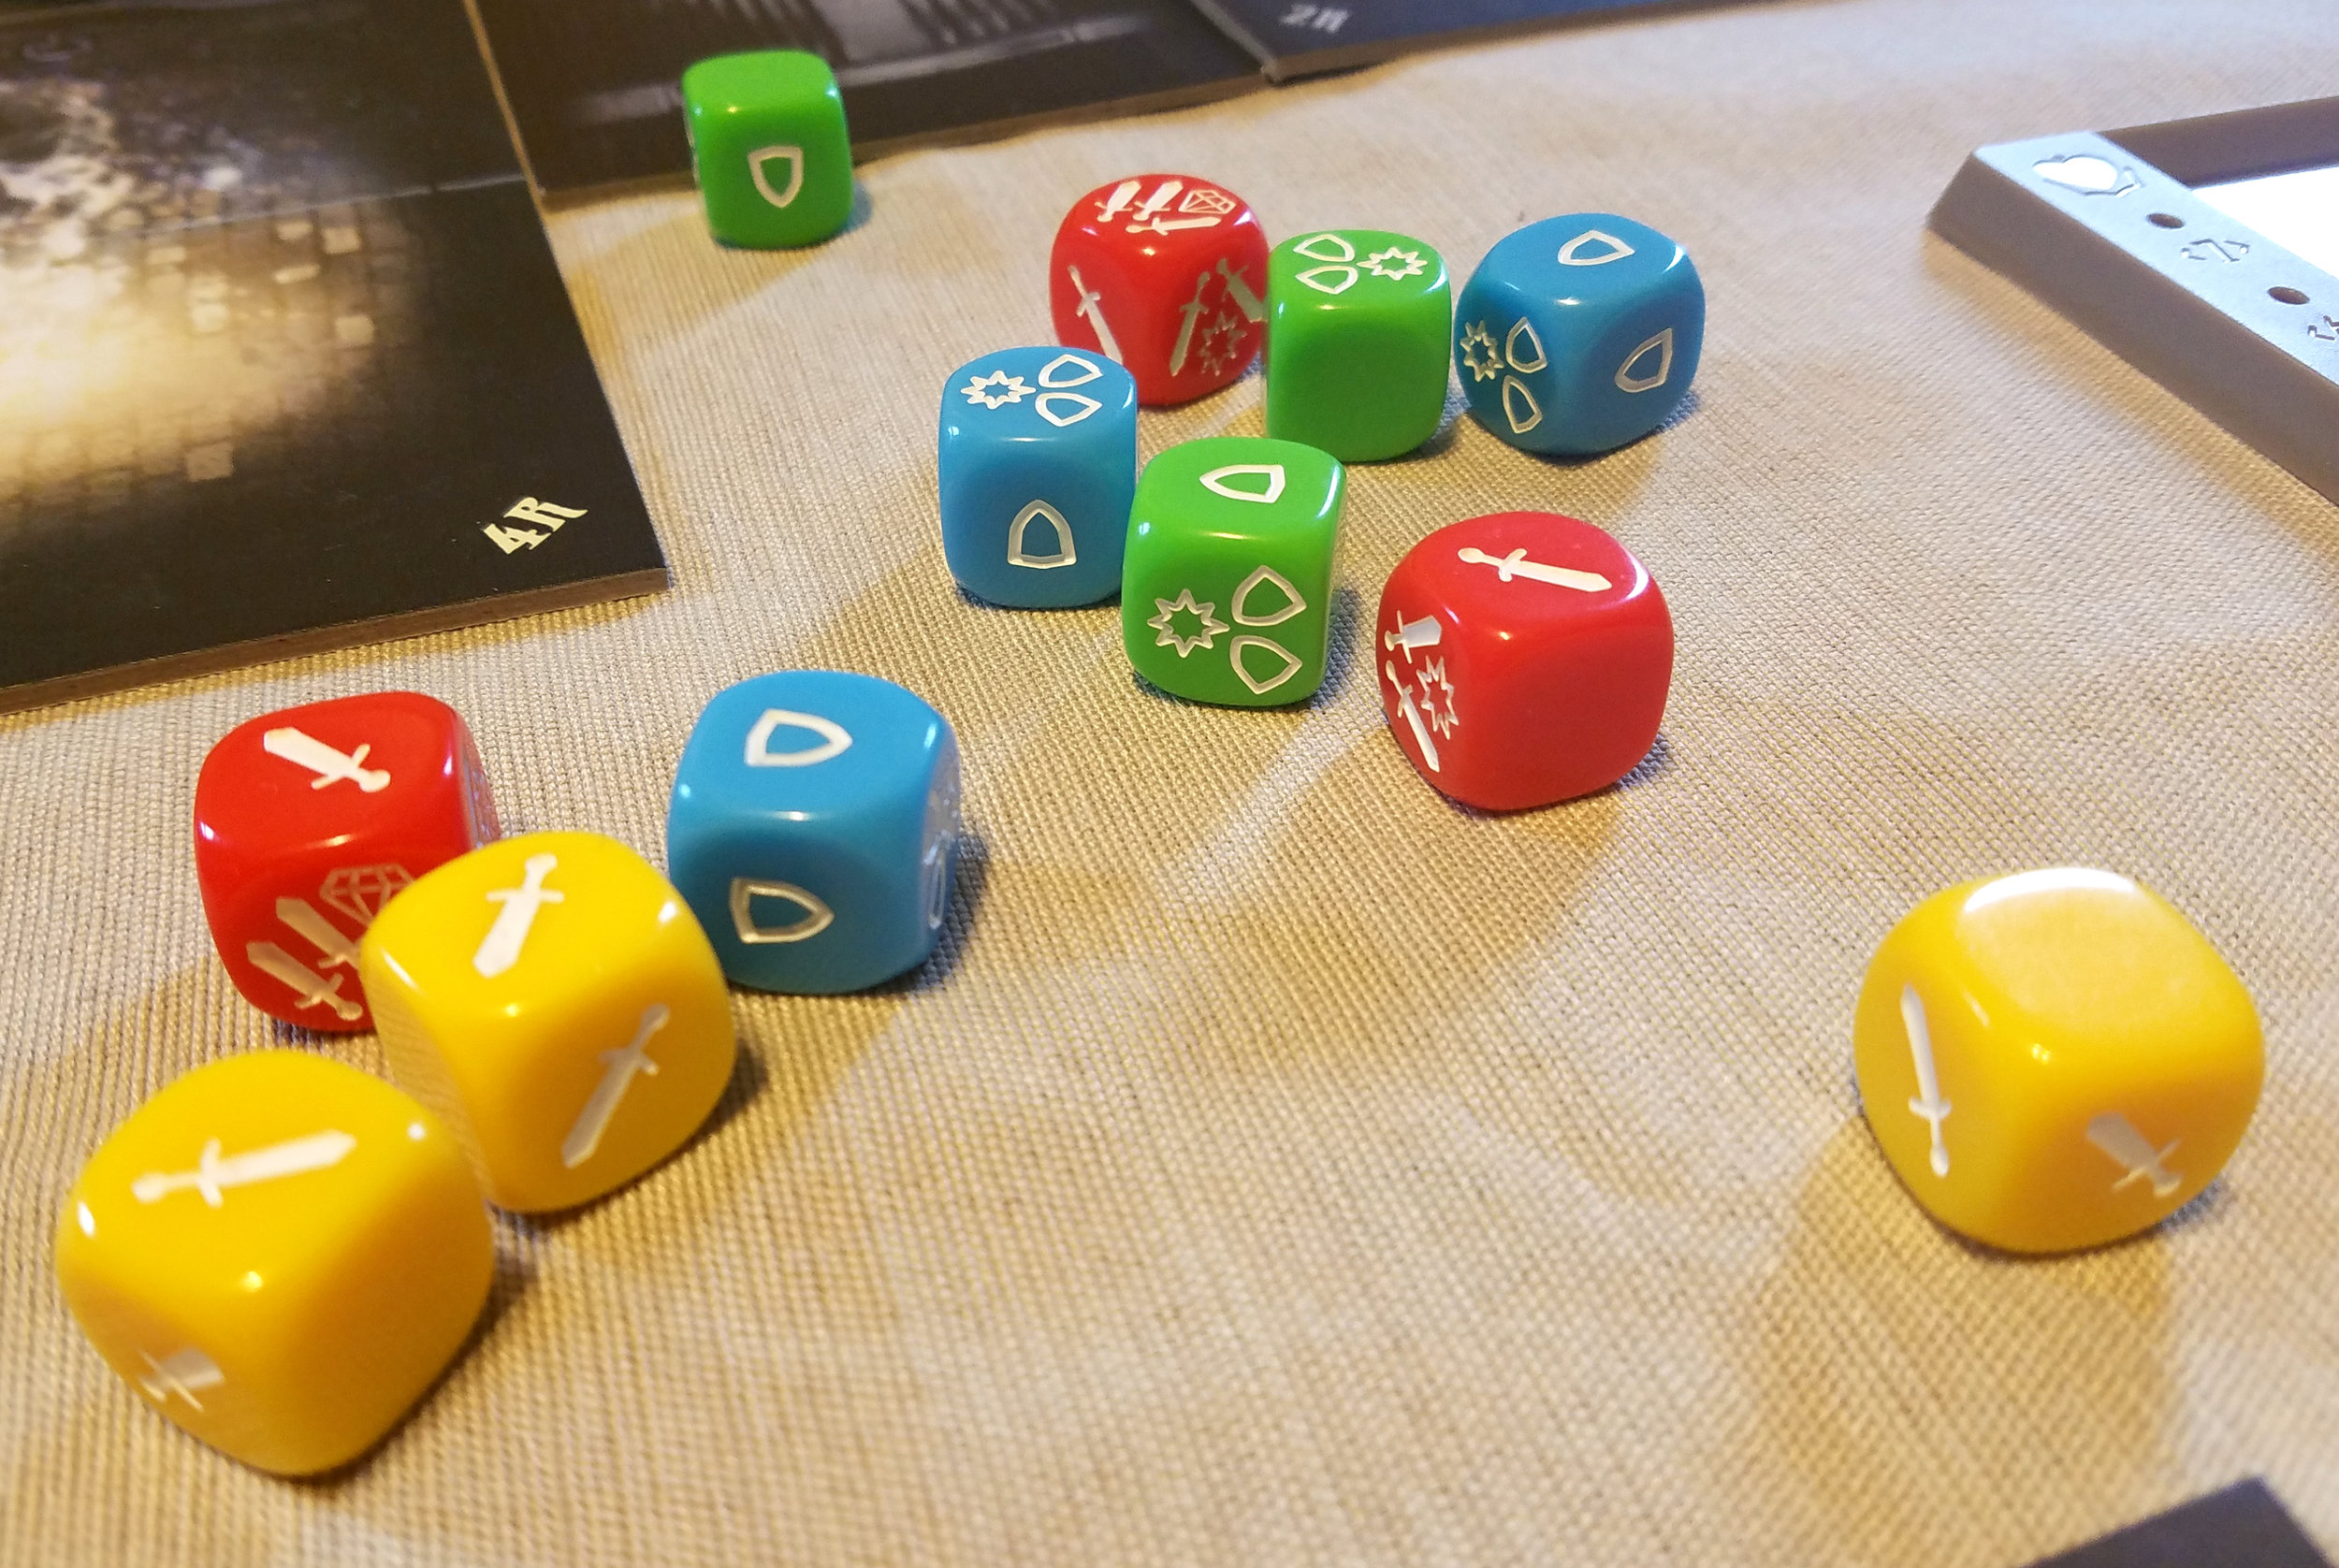 The dice are colorful and super easy to get the hang of.